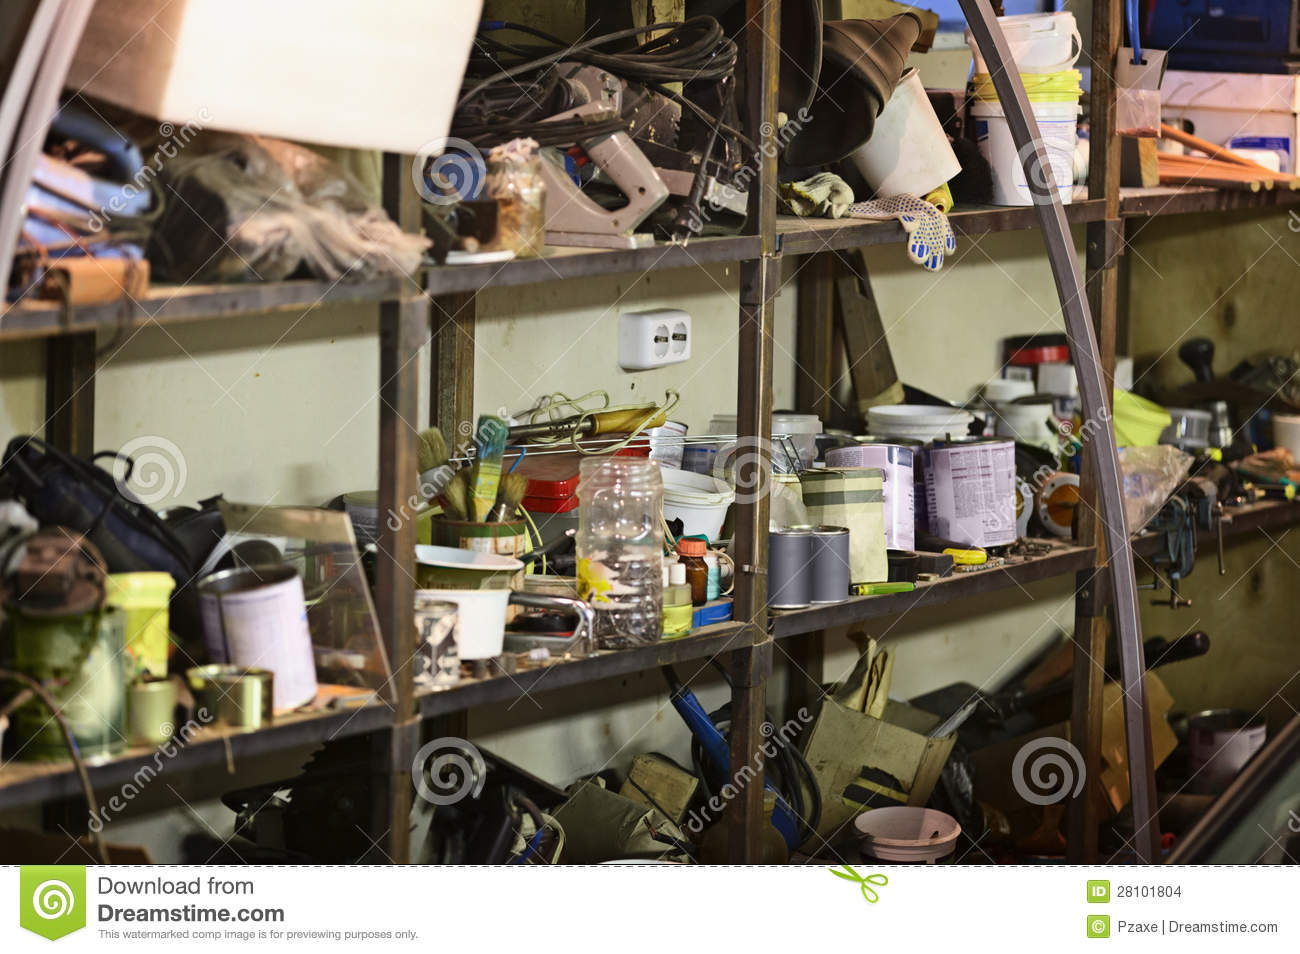 Bad Storage Of Tools And Materials Stock Images - Image: 28101804